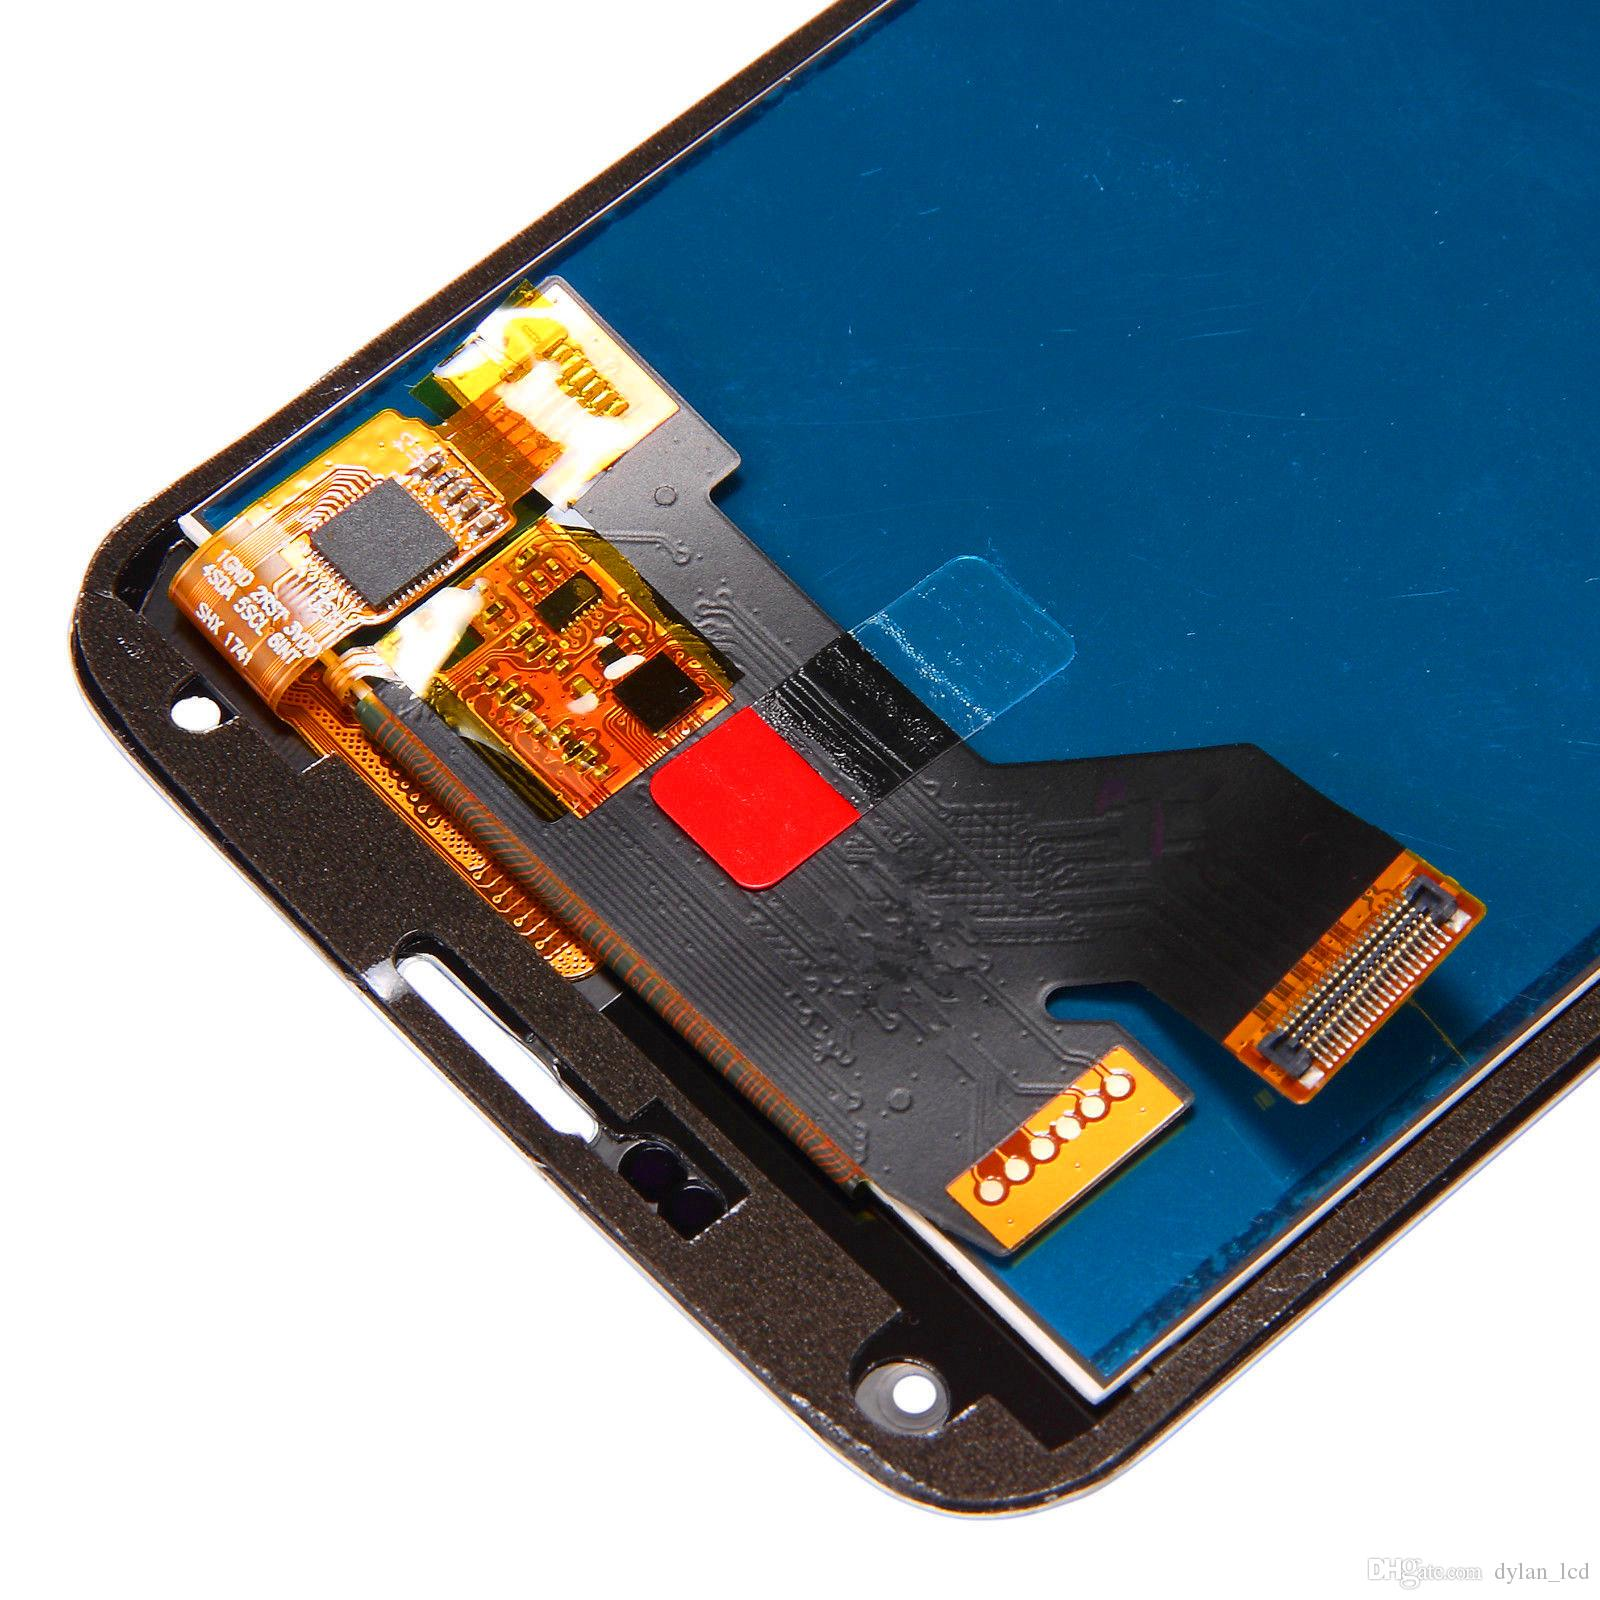 Lcd G900 Samsung Galaxy S5 LCD SM-G900 SM-G900F G900 Display LCD Touch Screen Digitizer Assembly copia Luce regolabile